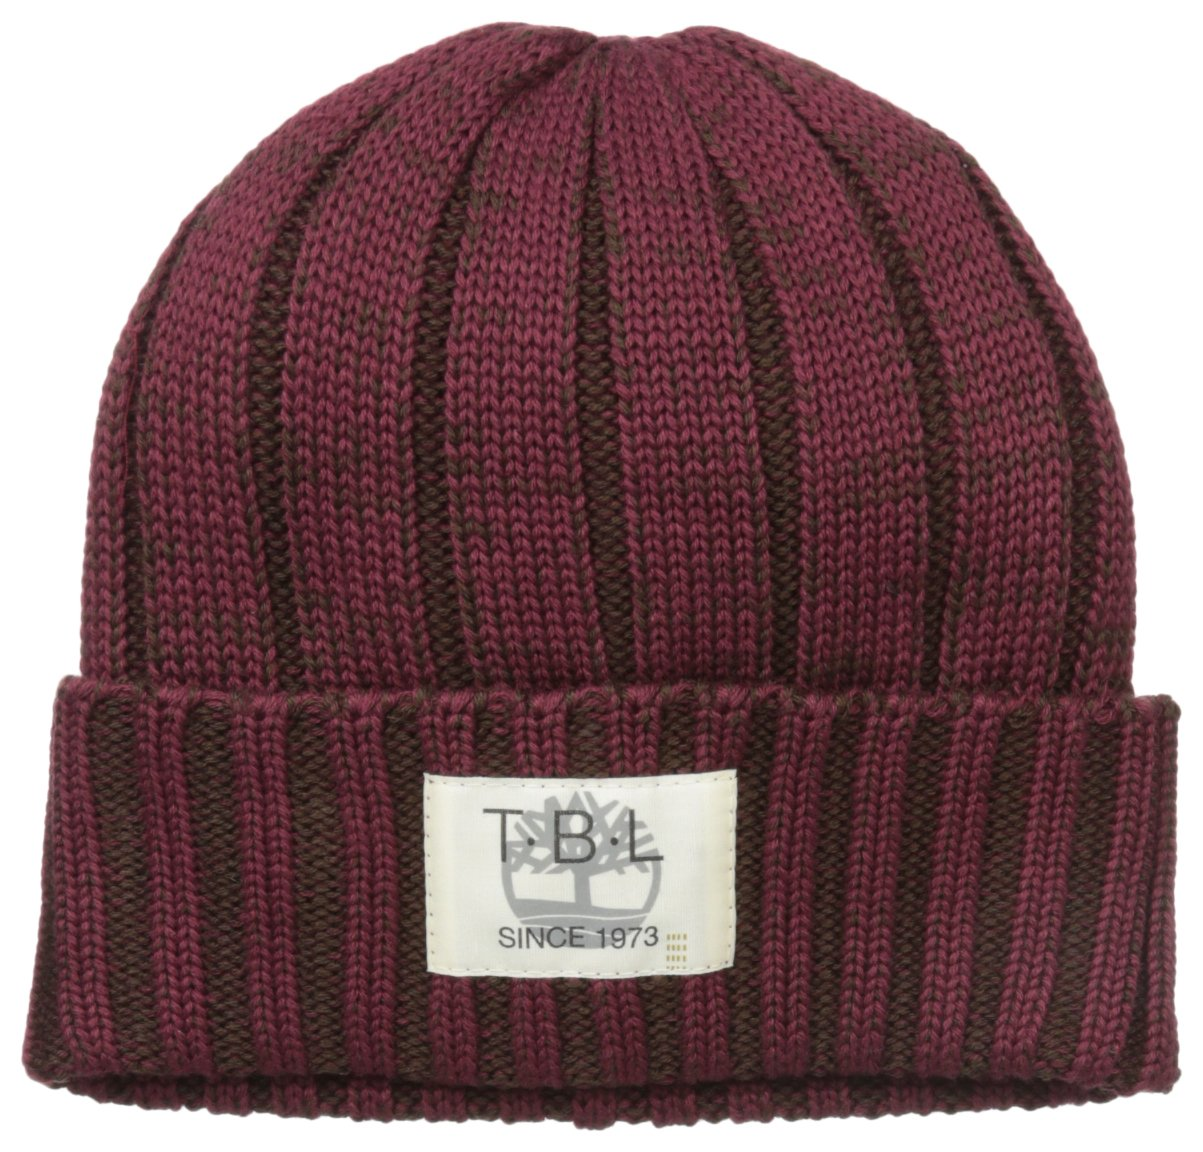 Timberland Men's Marled Ribbed Watch Cap, Chocolate Truffle, One Size by Timberland (Image #1)